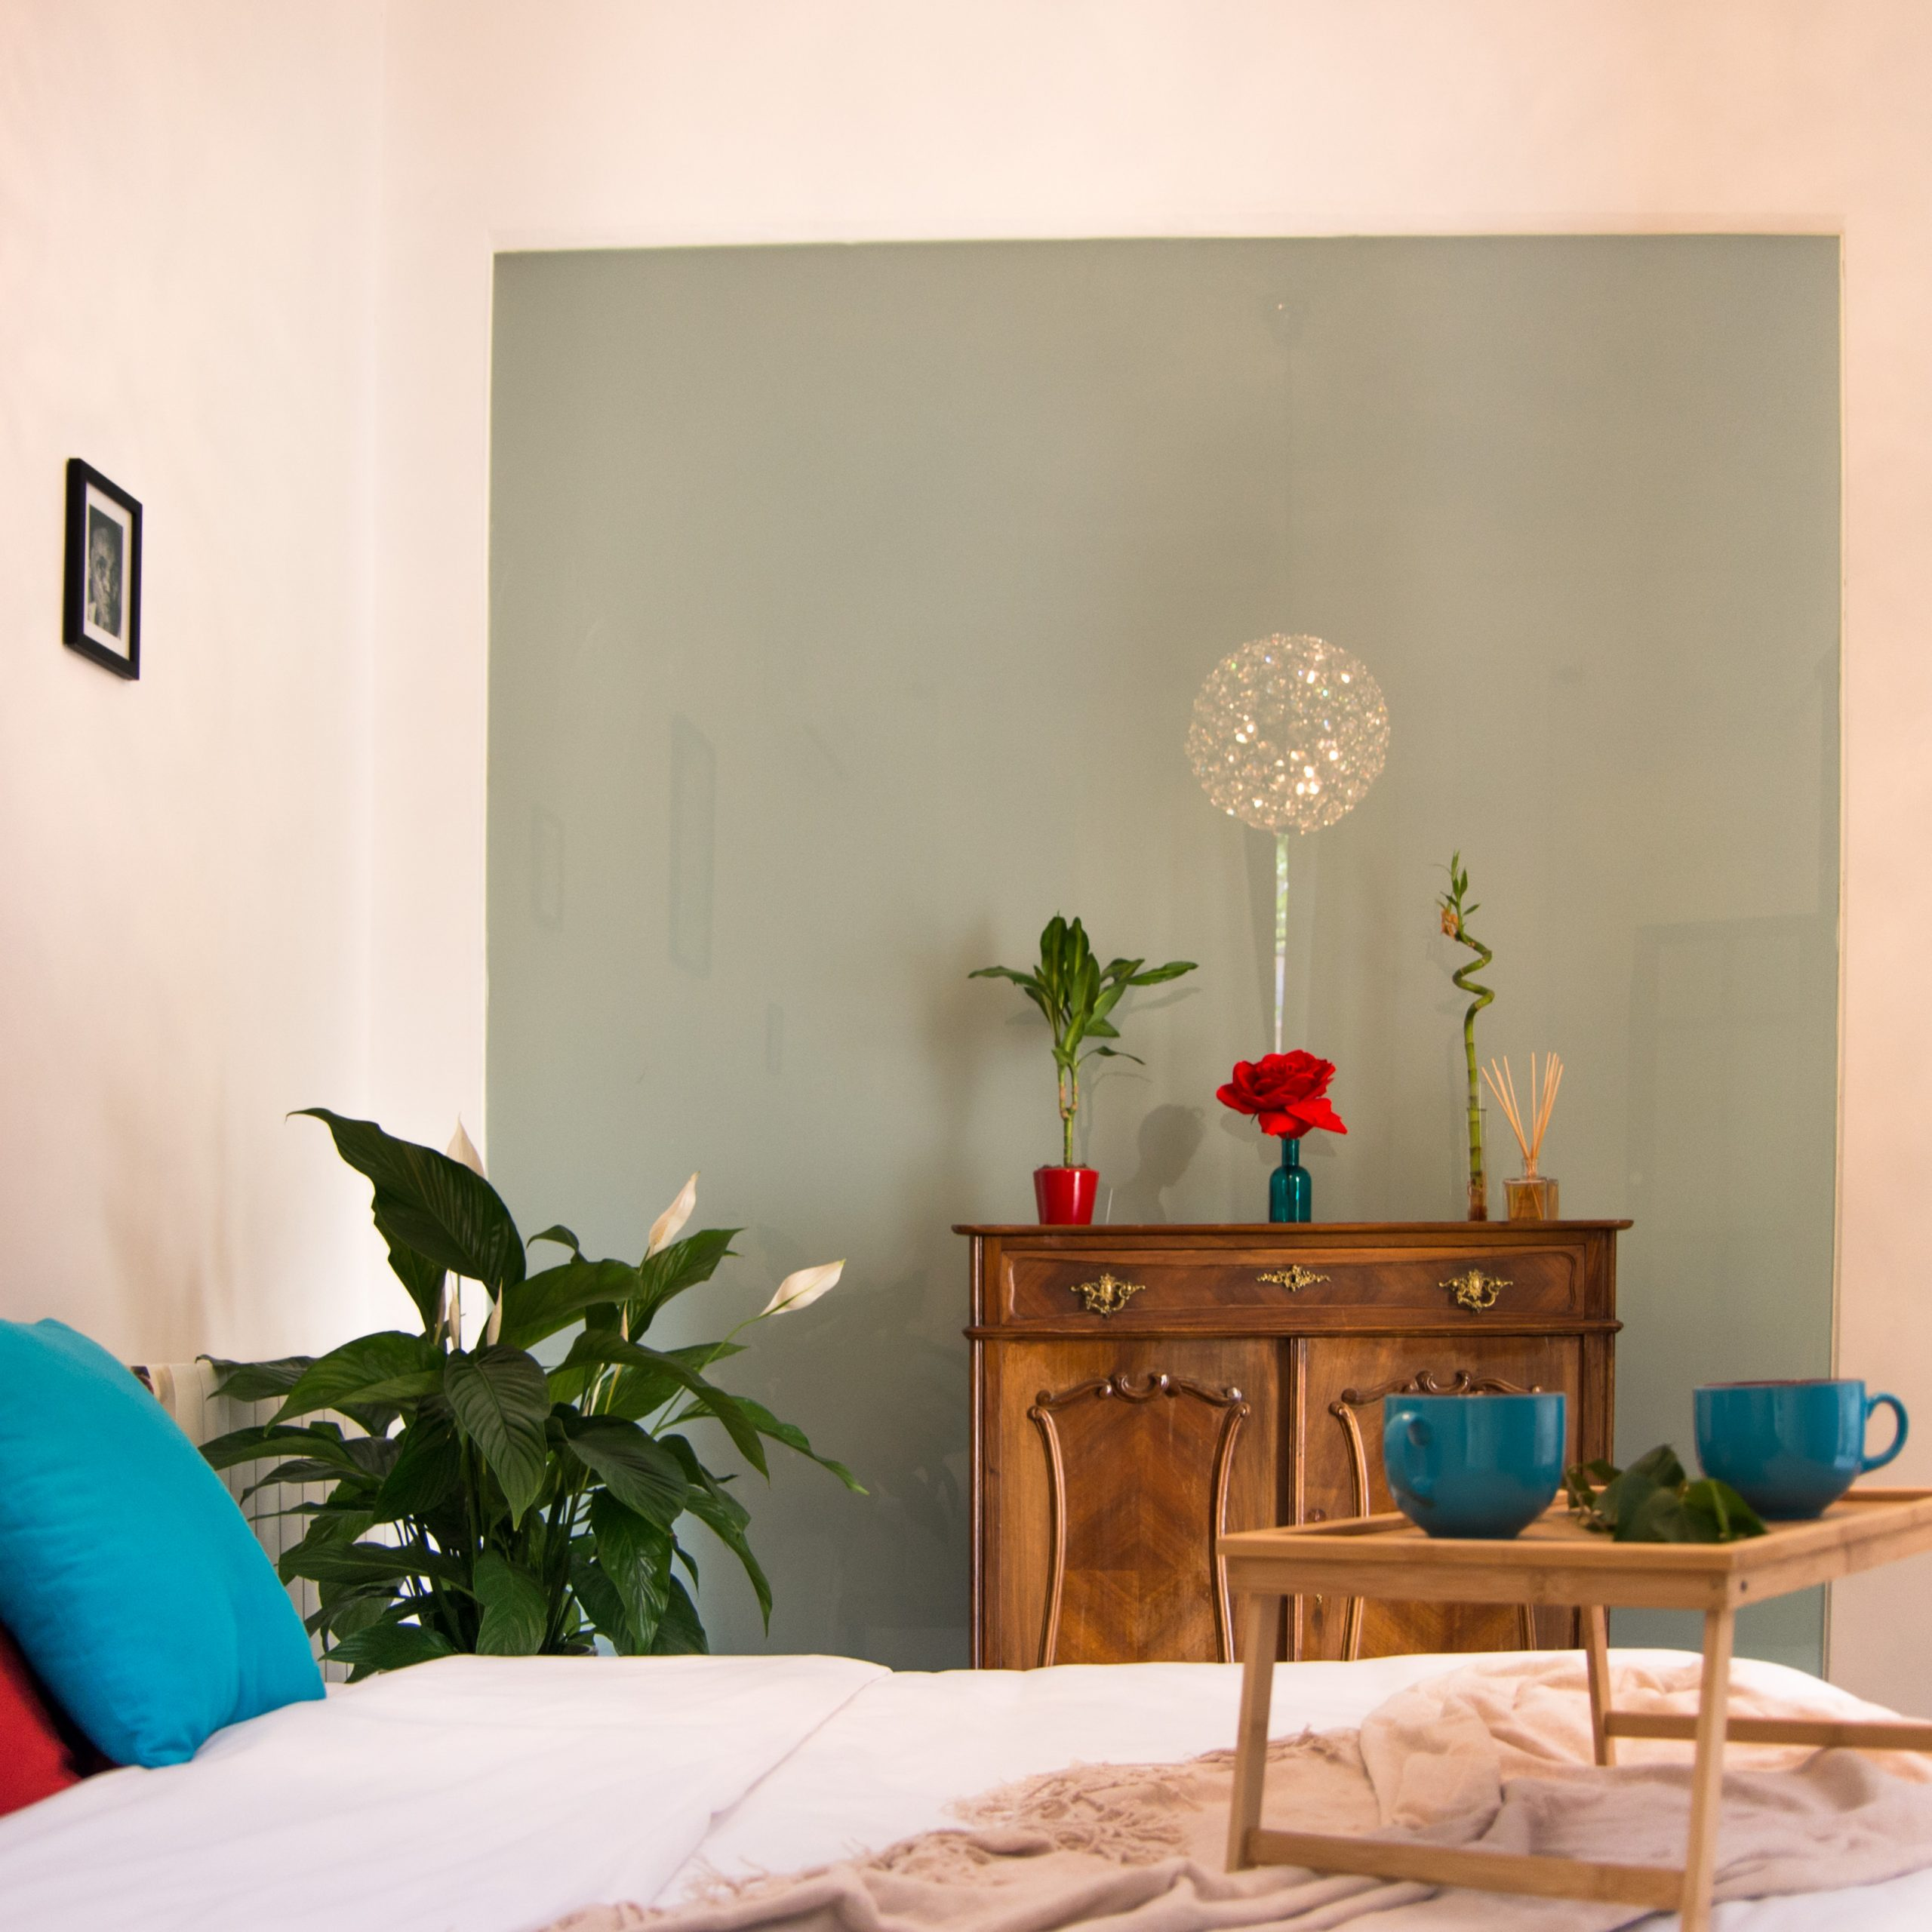 Portrait - Coliving house for digital nomads in Valencia